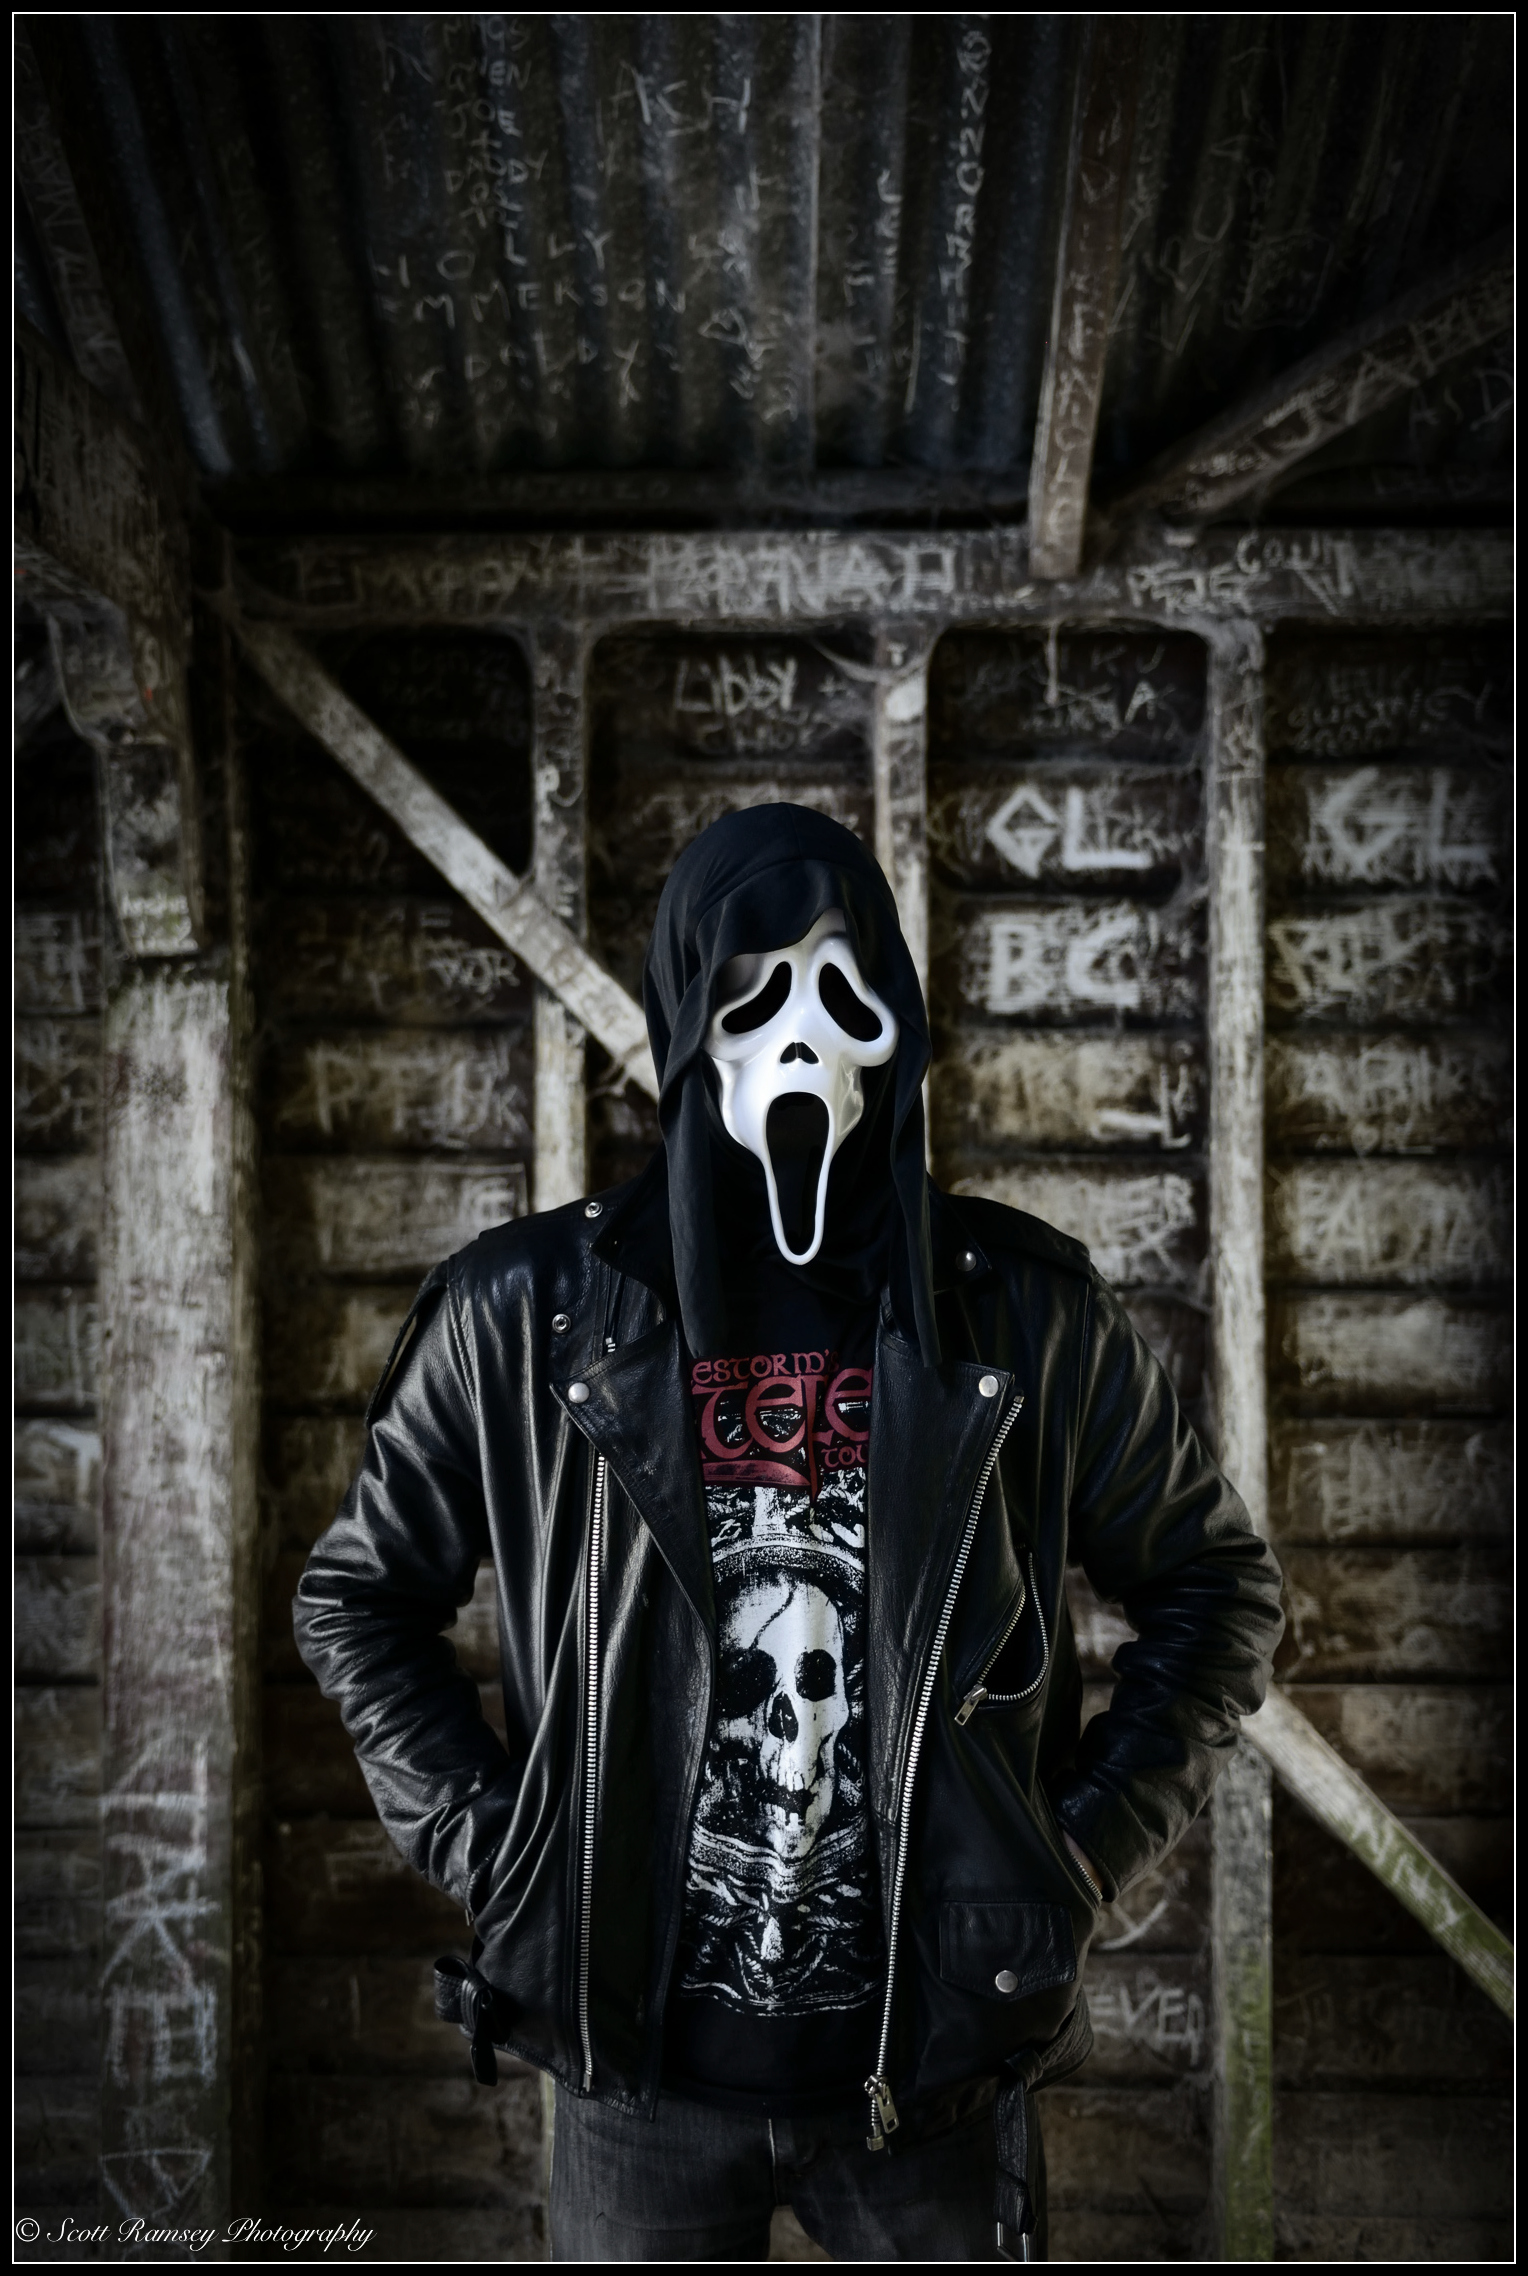 An urban Halloween photo taken in an abandoned boat house. The walls were covered in graffiti and idle for the photo shoot. © Scott Ramsey Photography